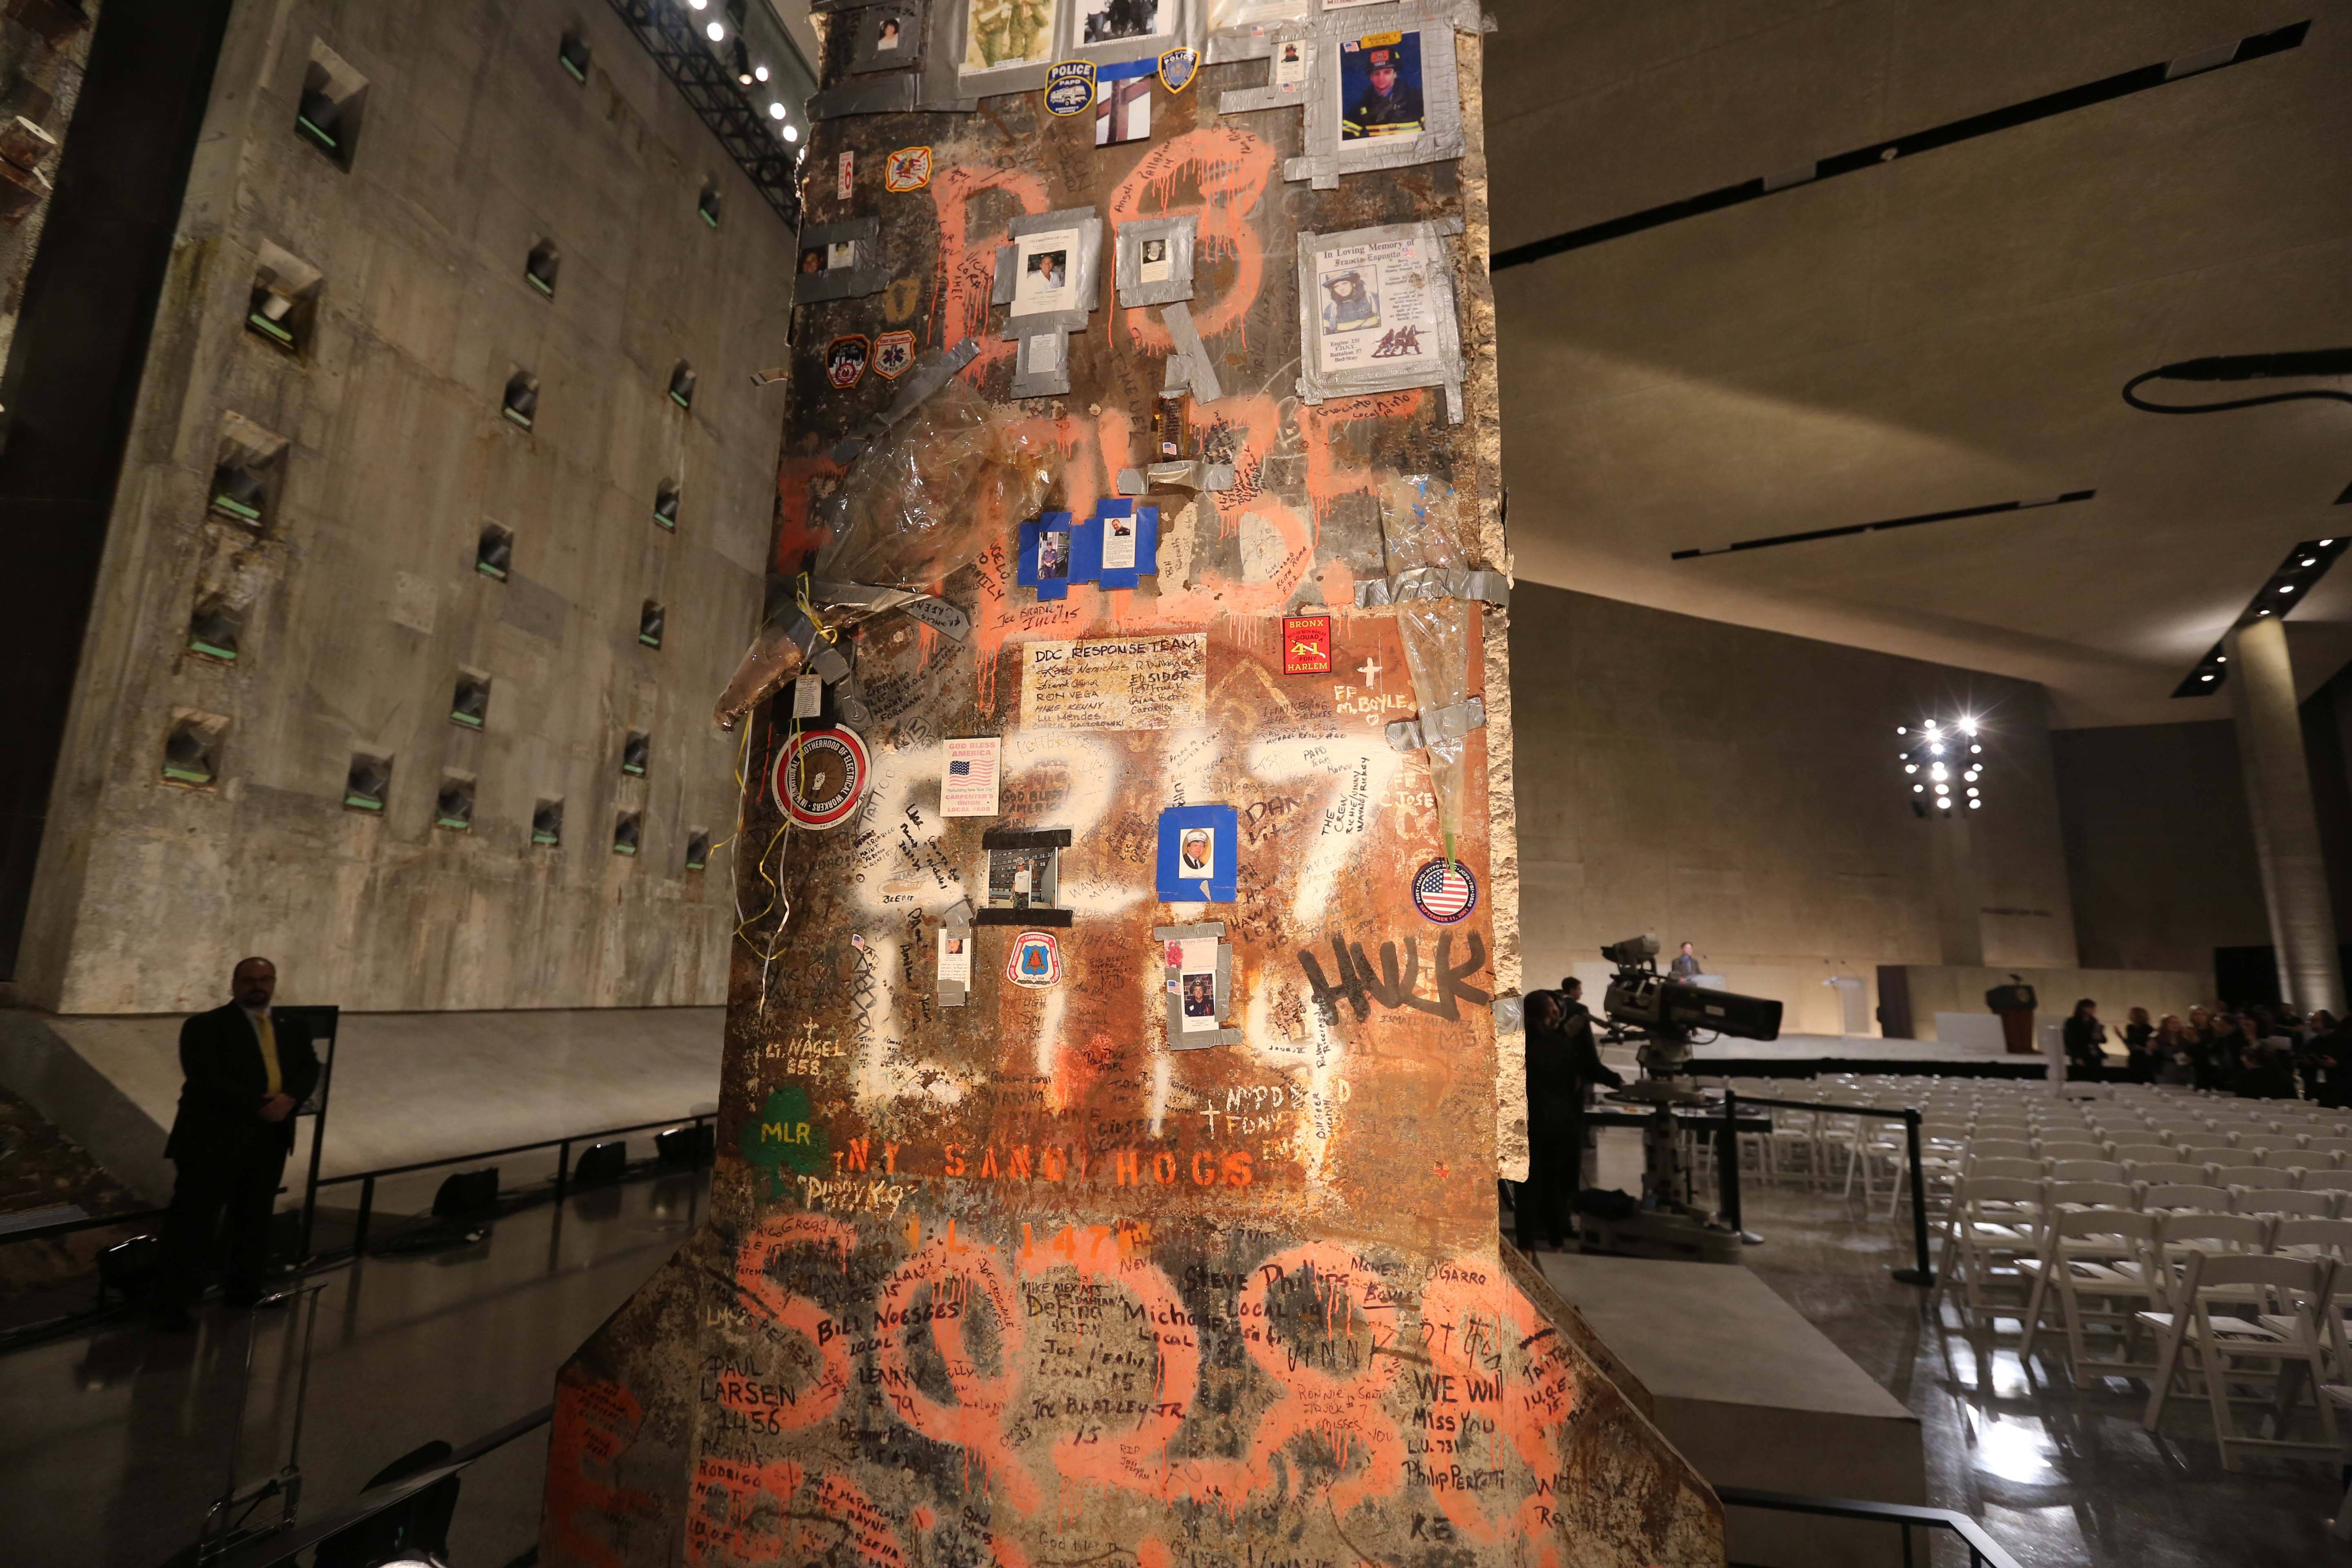 A steel beam from the World Trade Center stands at the center of Foundation Hall in the National Sept. 11 Memorial Museum in New York. Behind the wrenching sights and sounds of the museum lies a quiet effort to help visitors handle its potentially traumatic impact, from built-in tissue boxes to a layout designed to let people bypass the most intense exhibits if they choose.